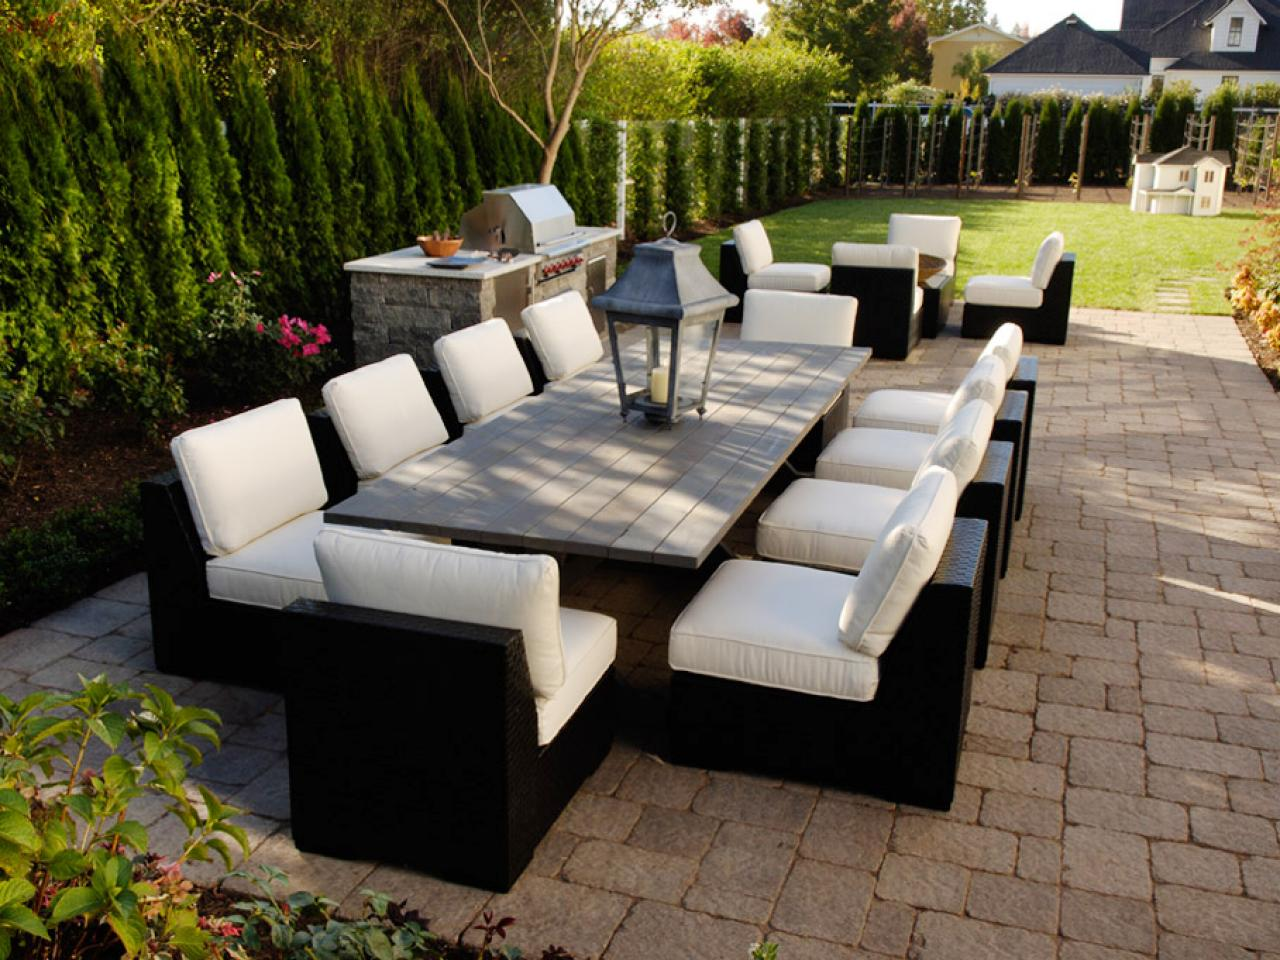 Patio Design: Size And Shape